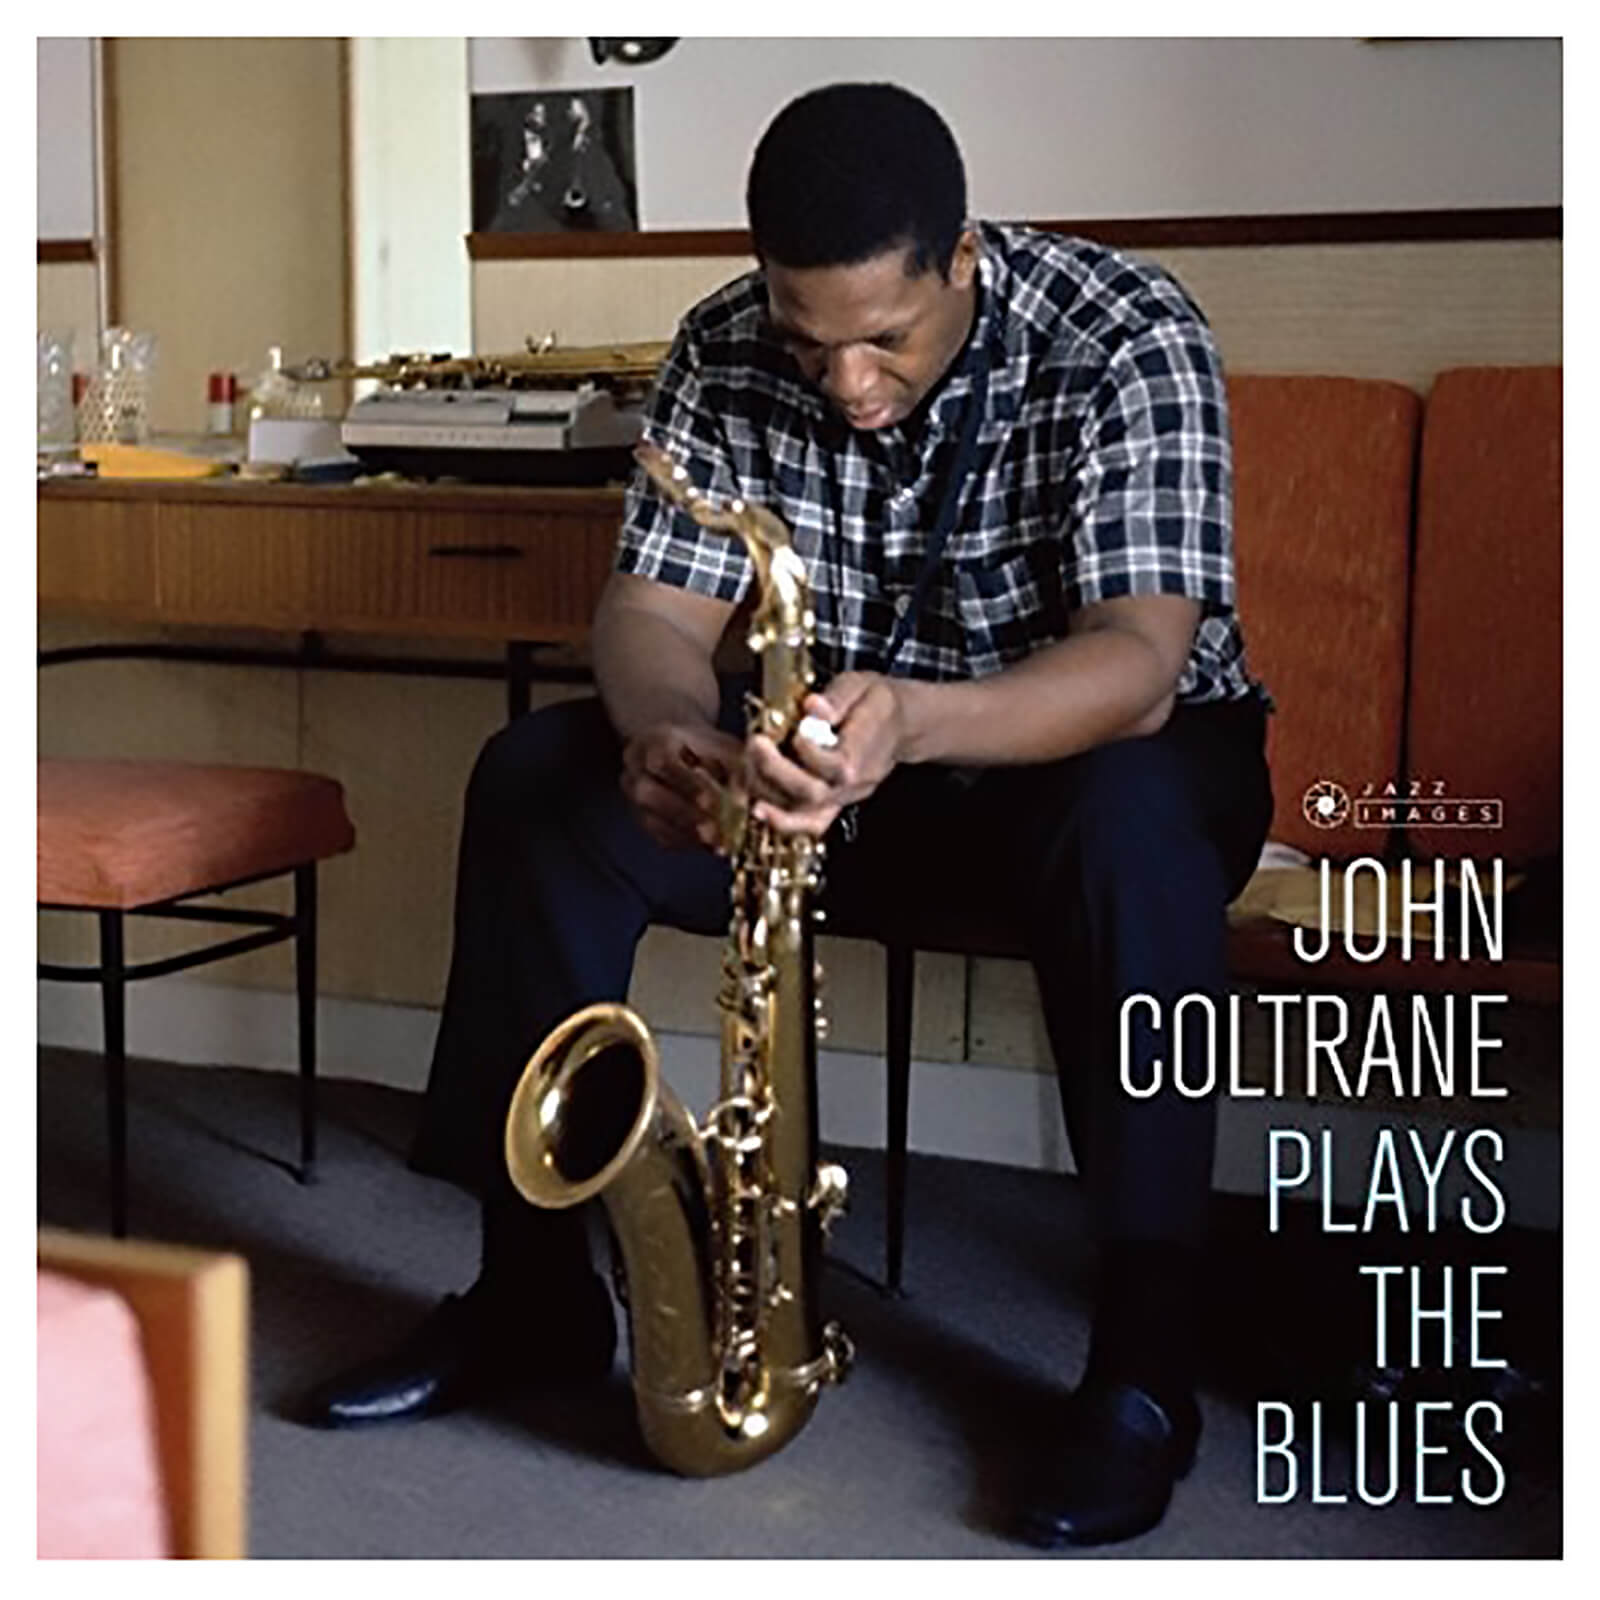 John Coltrane - Plays The Blues (Cover Photo Jean-Pierre Leloir) - Vinyl